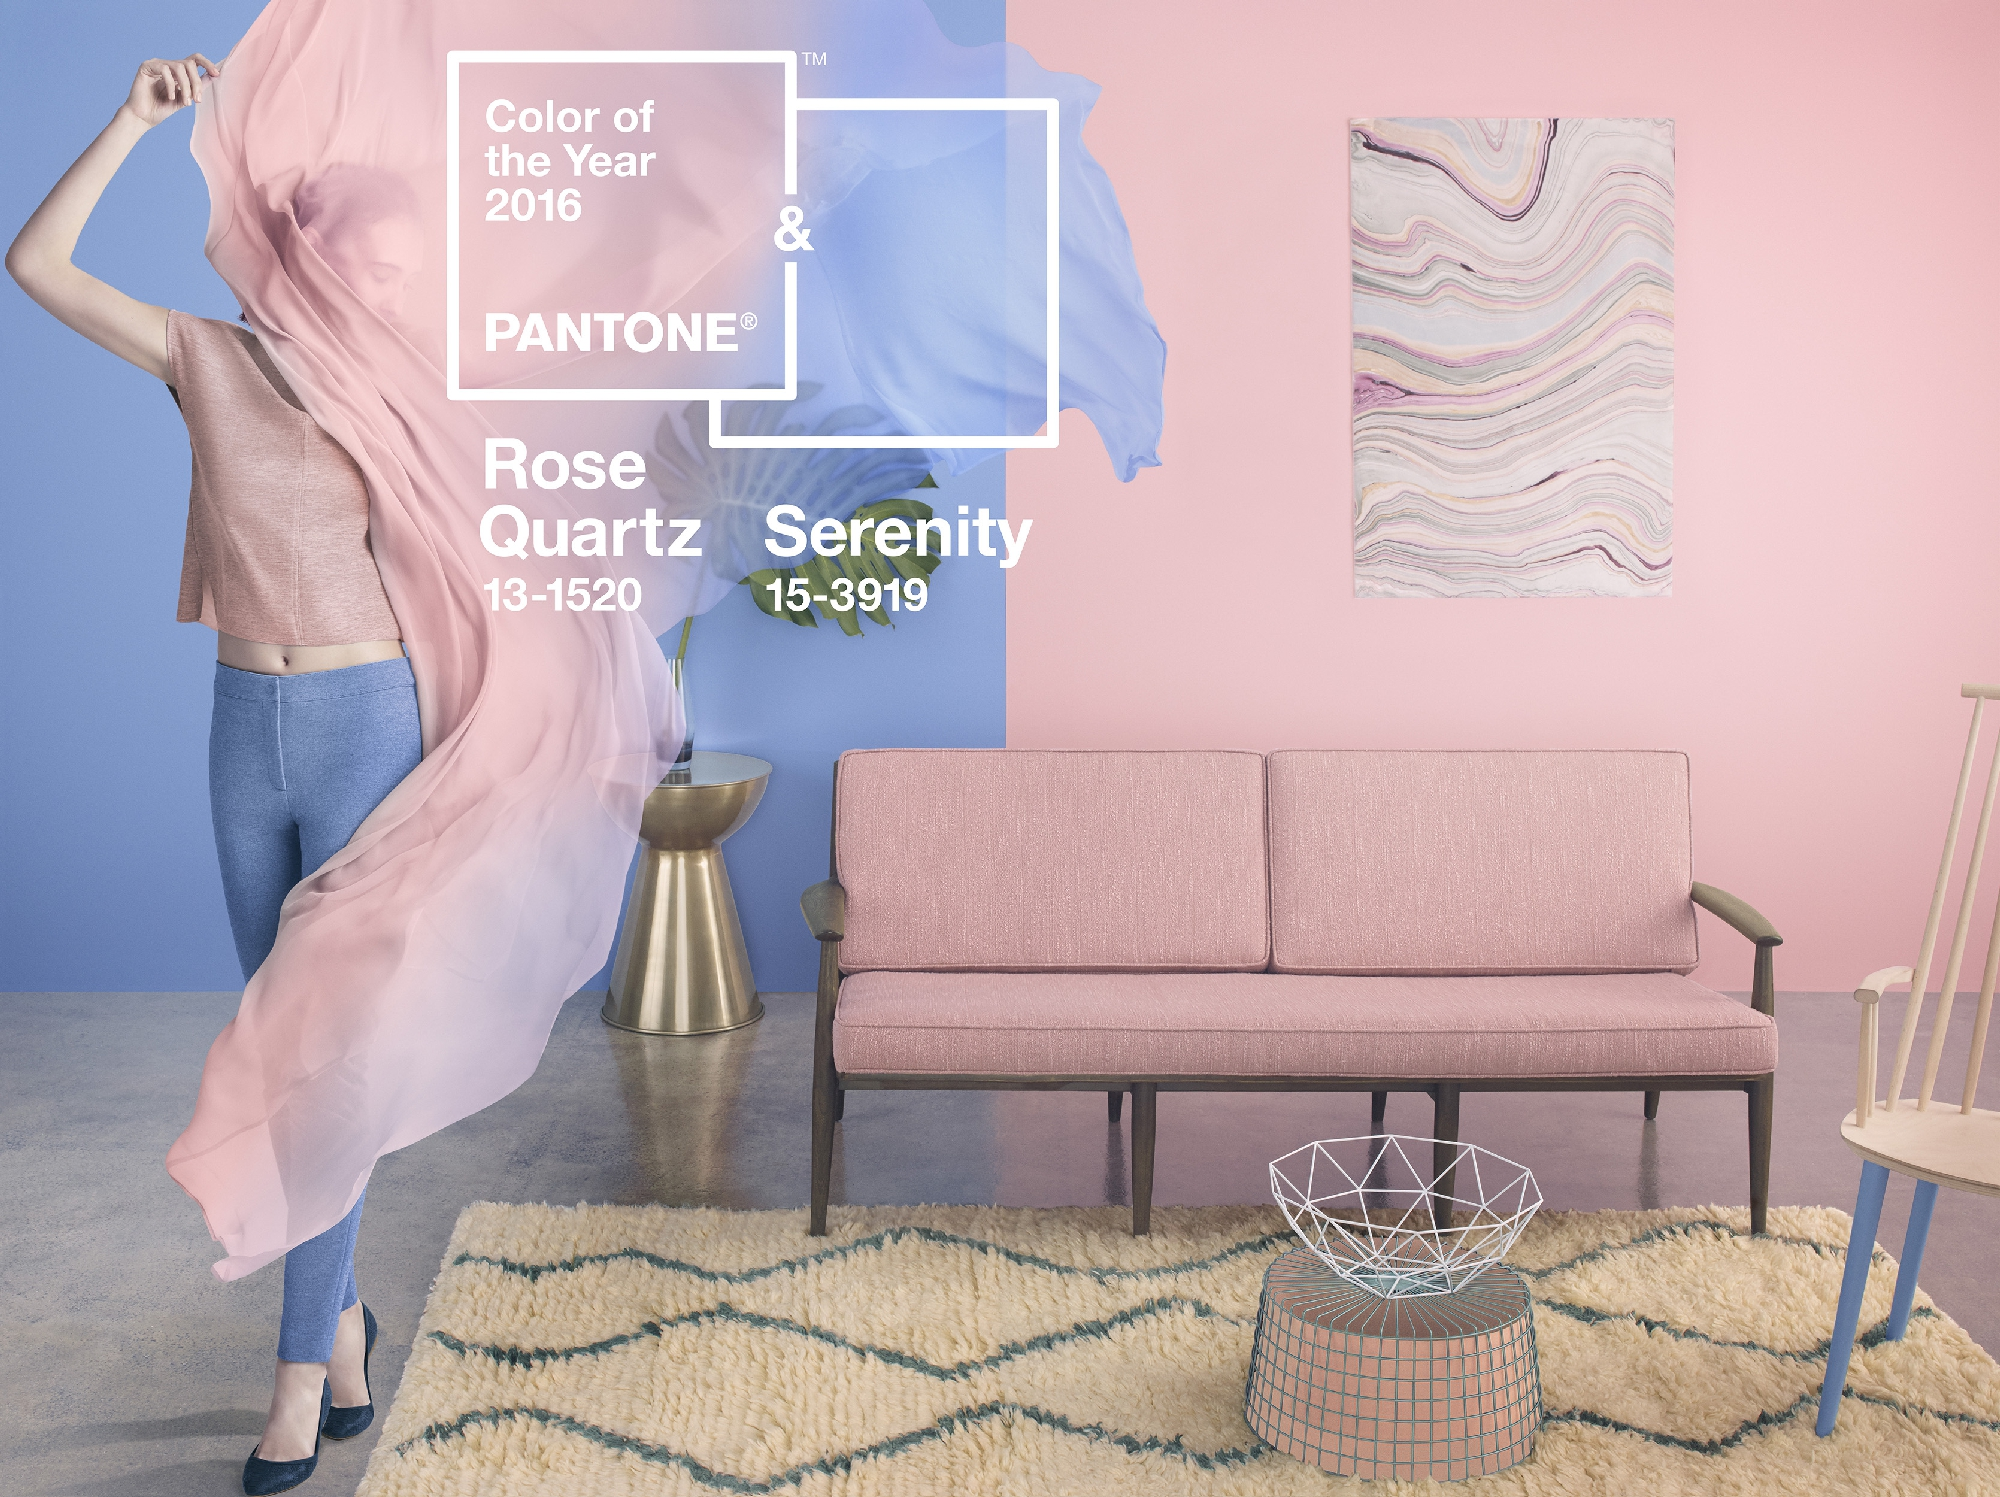 For 2016, Pantone Announces Two Colors of the Year | Builder ...